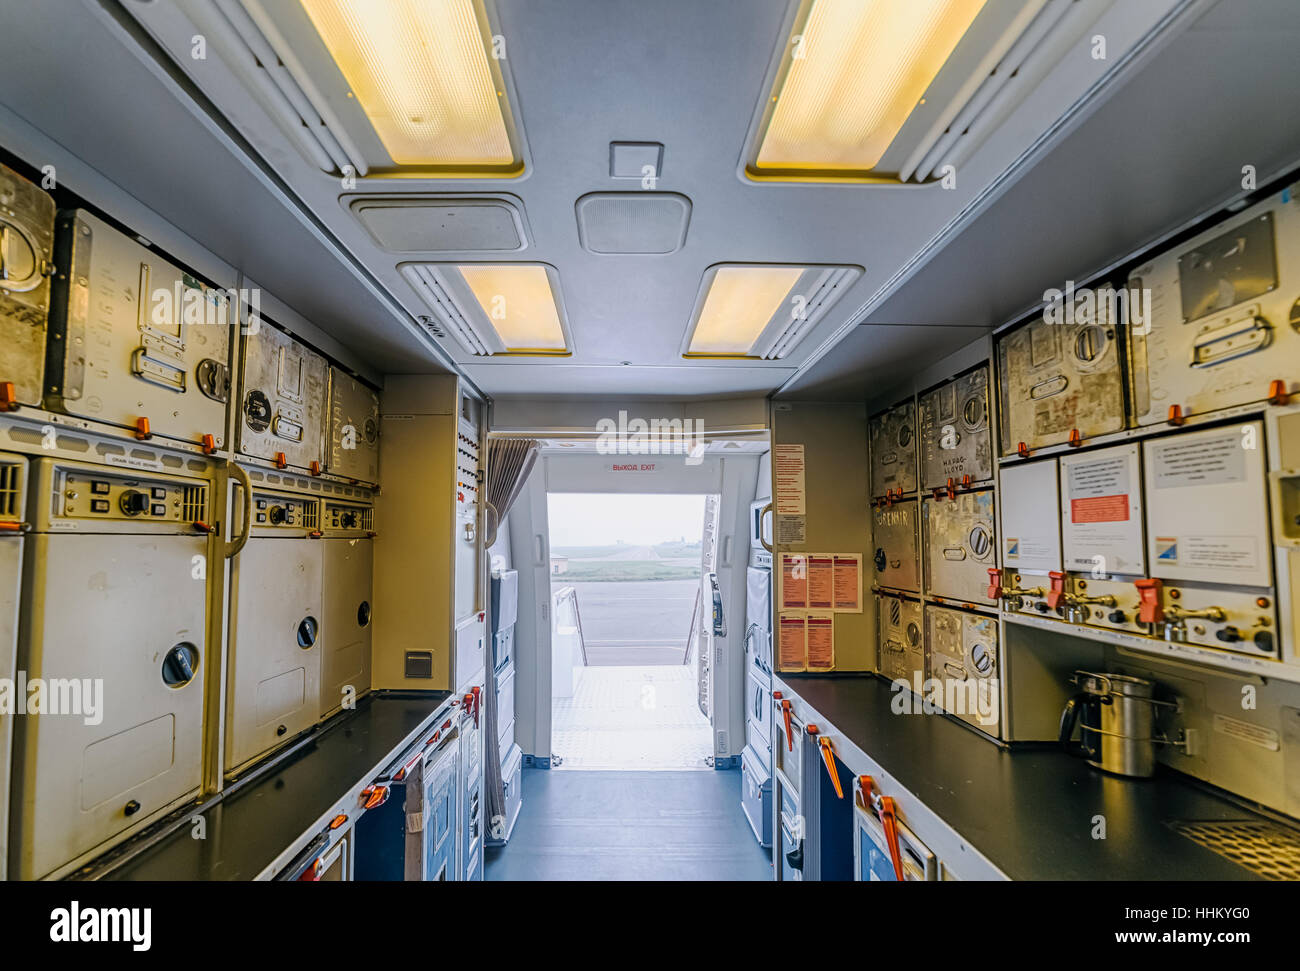 Airplane on the airfield. Inside the cabin . View from the kitchen to the main entrance to the salon. - Stock Image